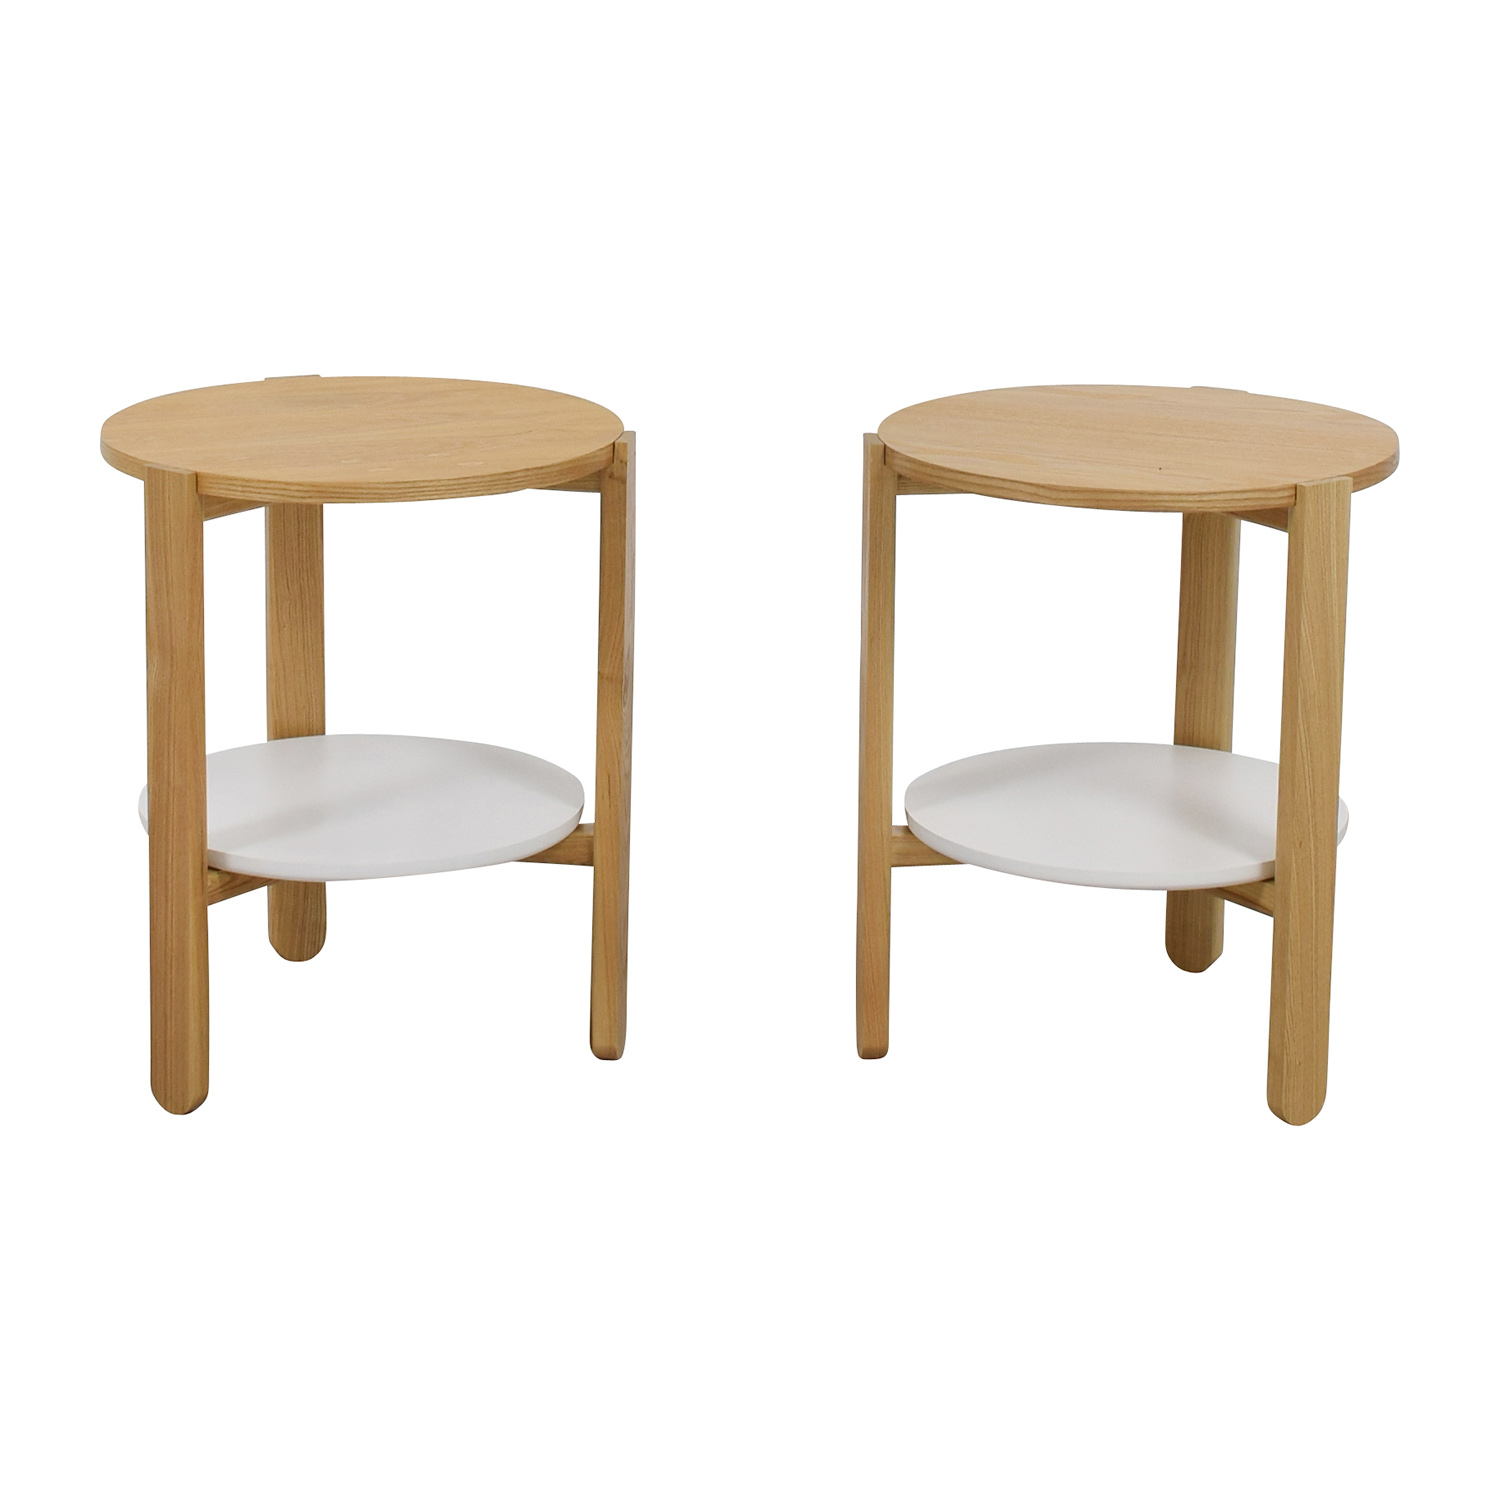 Umbra Umbra Two-toned Round Wood Side Tables second hand